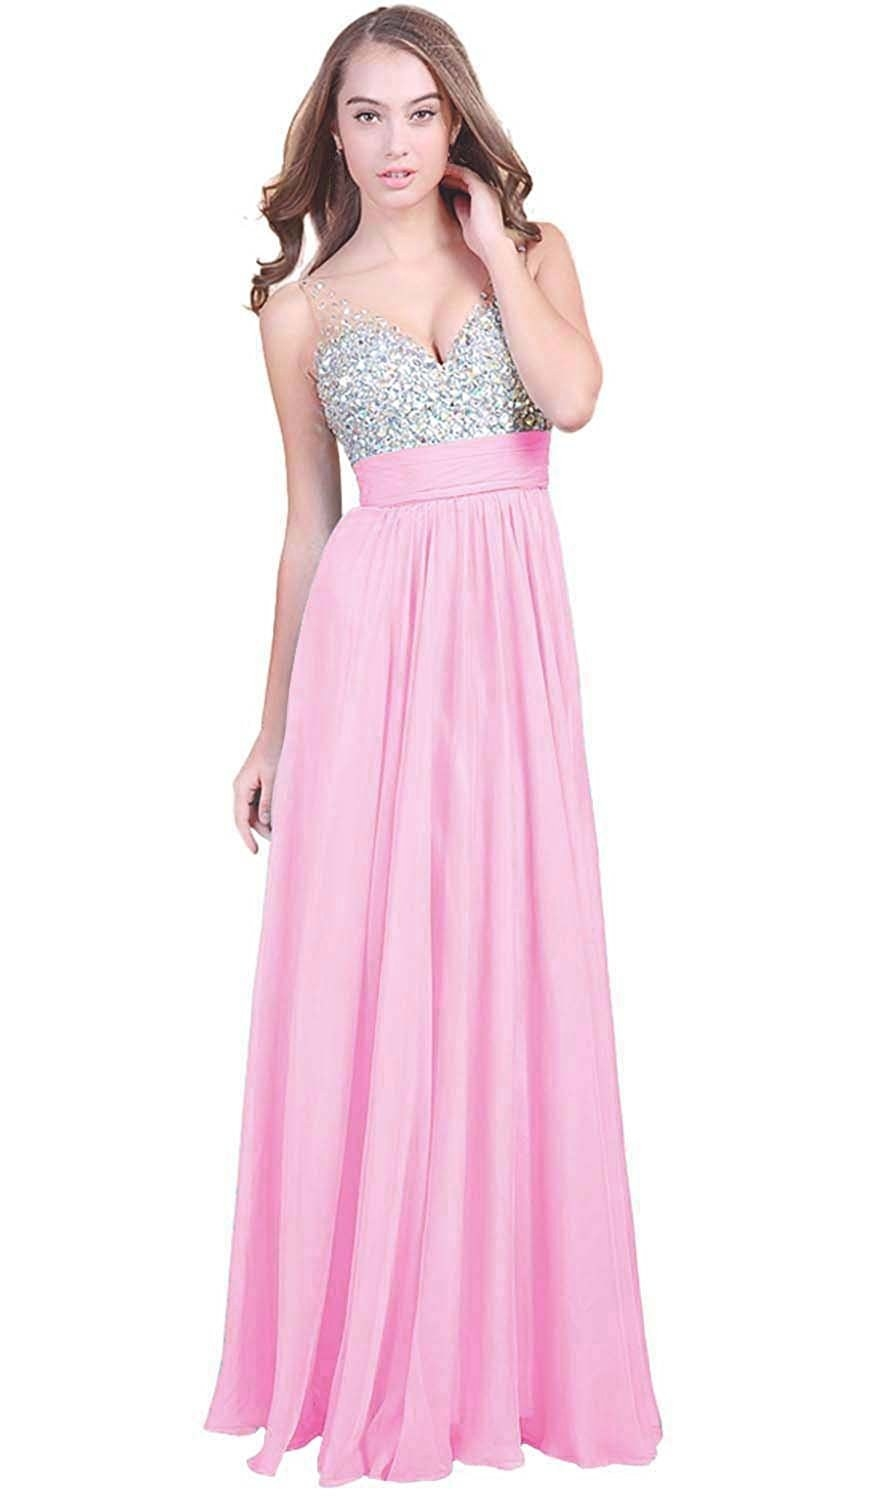 Best place to buy formal dresses online